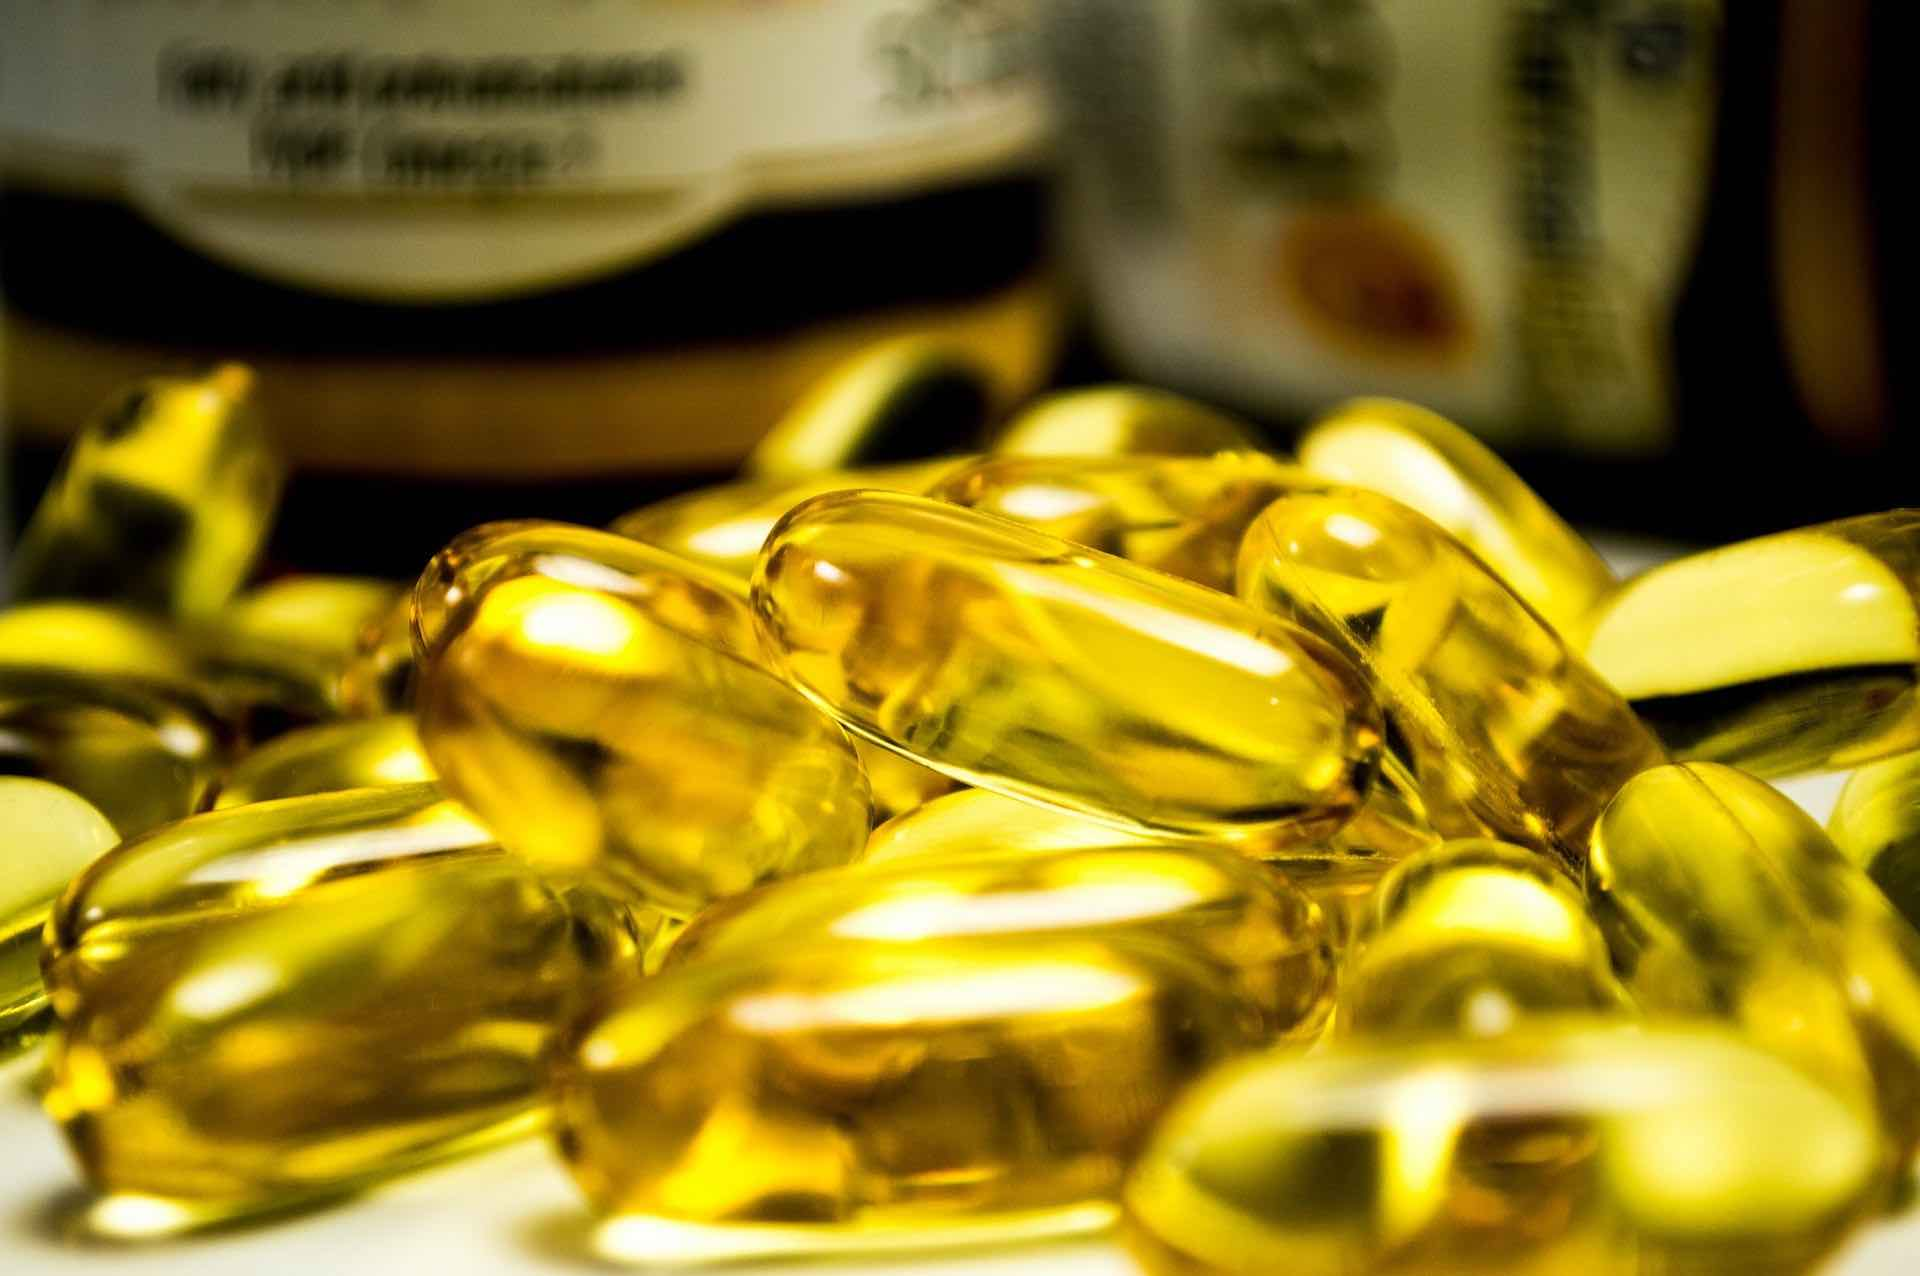 omega 3 - fish oil - inflammation